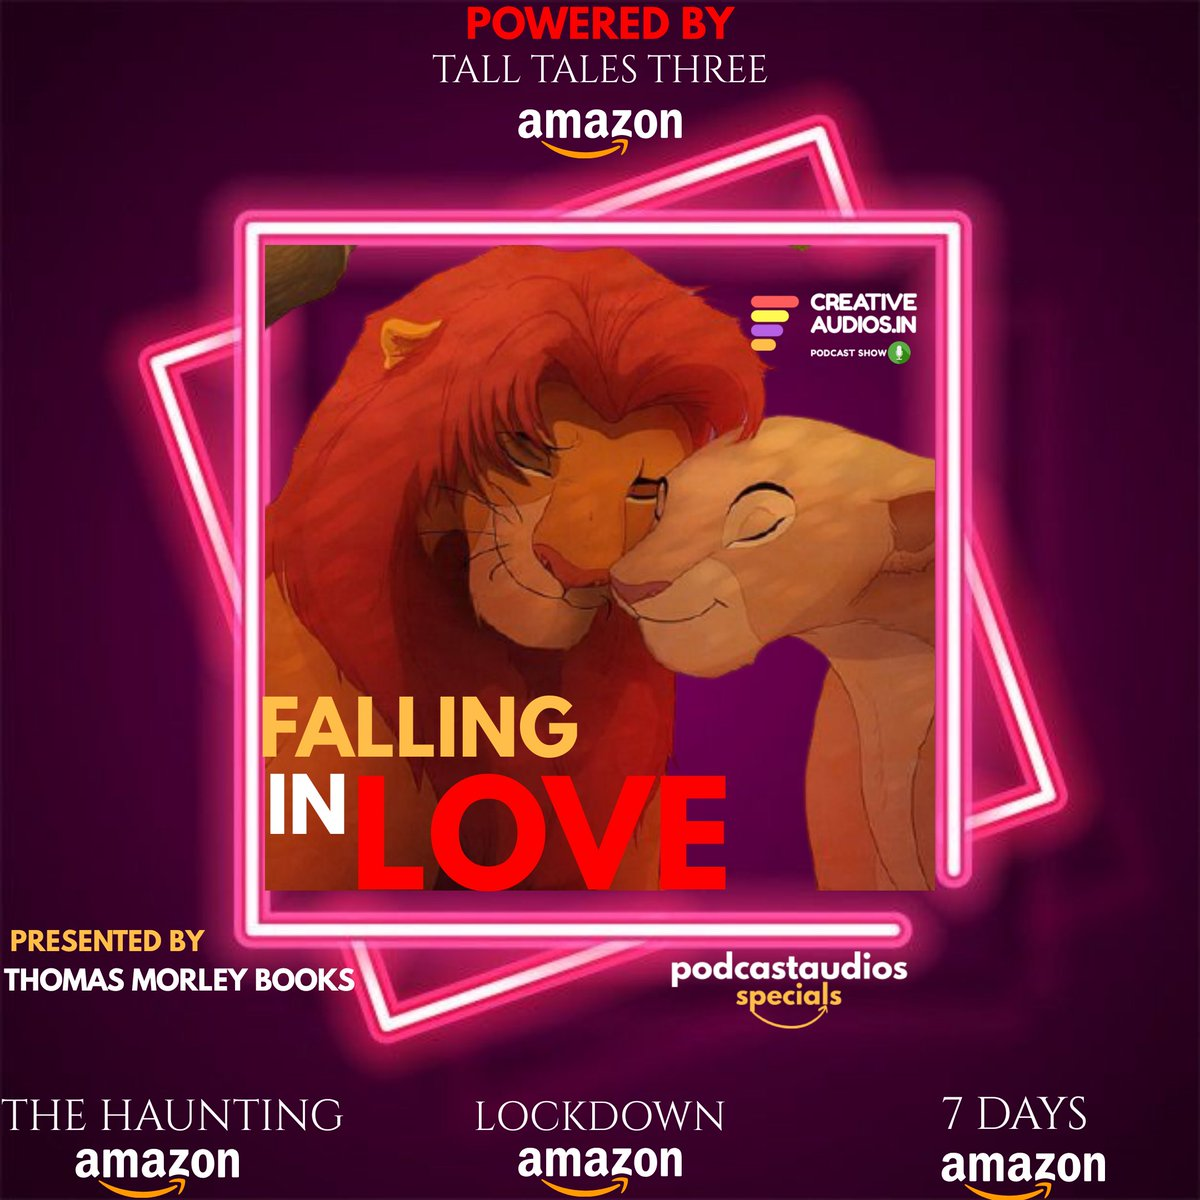 OUR MOST AWAITED EPISODE👇 https://t.co/2HD9Sp8B9O FALLING IN LOVE ❤️  Listen exclusive now☝️ From The BEST FICTION STORYTELLING PODCAST  SERIES #contentmarketing #podcastlife #podcastshow #podcastaddict #podcasthost #podcastnetwork #podcastlifestyle #itunes #videoproduction https://t.co/IEtdNlDMnt